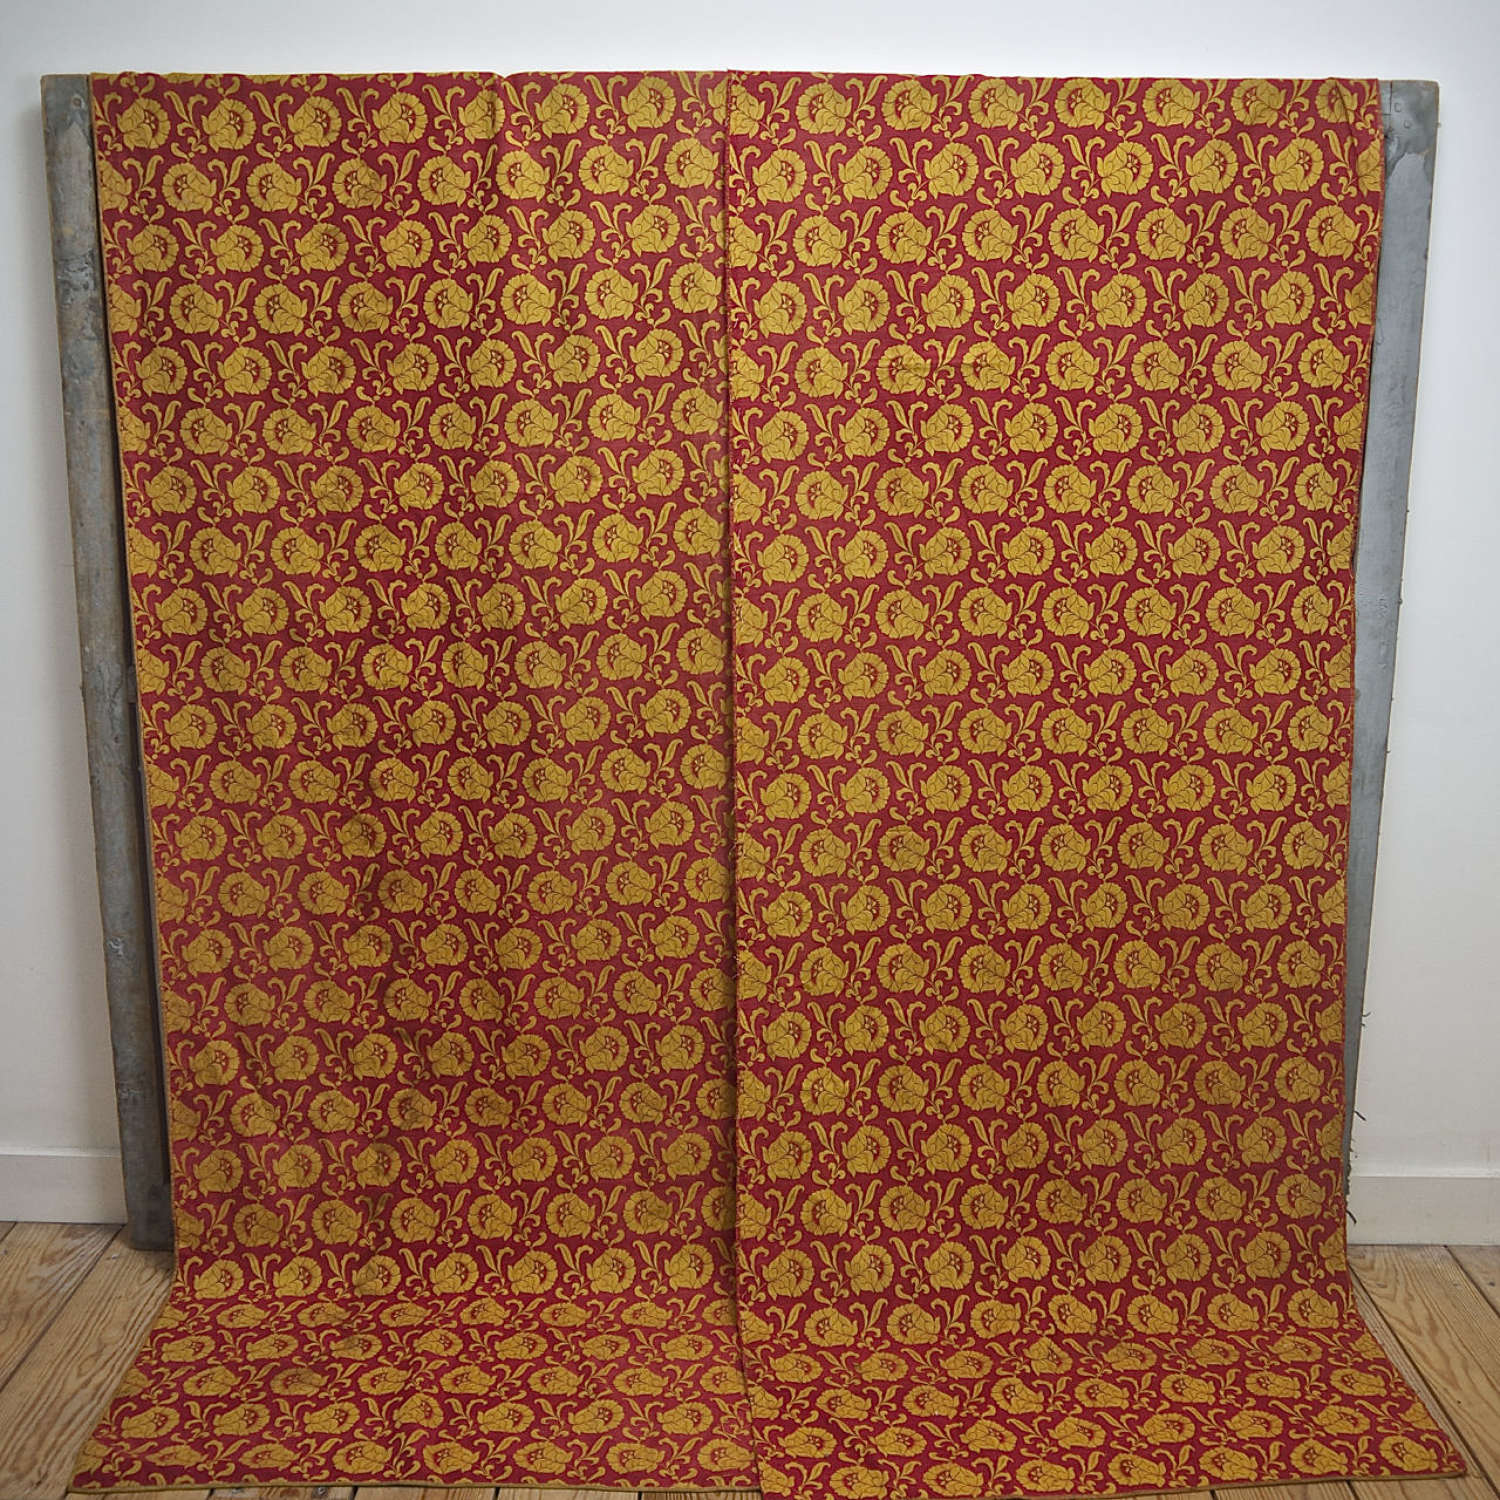 Saffron Yellow and Red Silk Panels French 18th Century